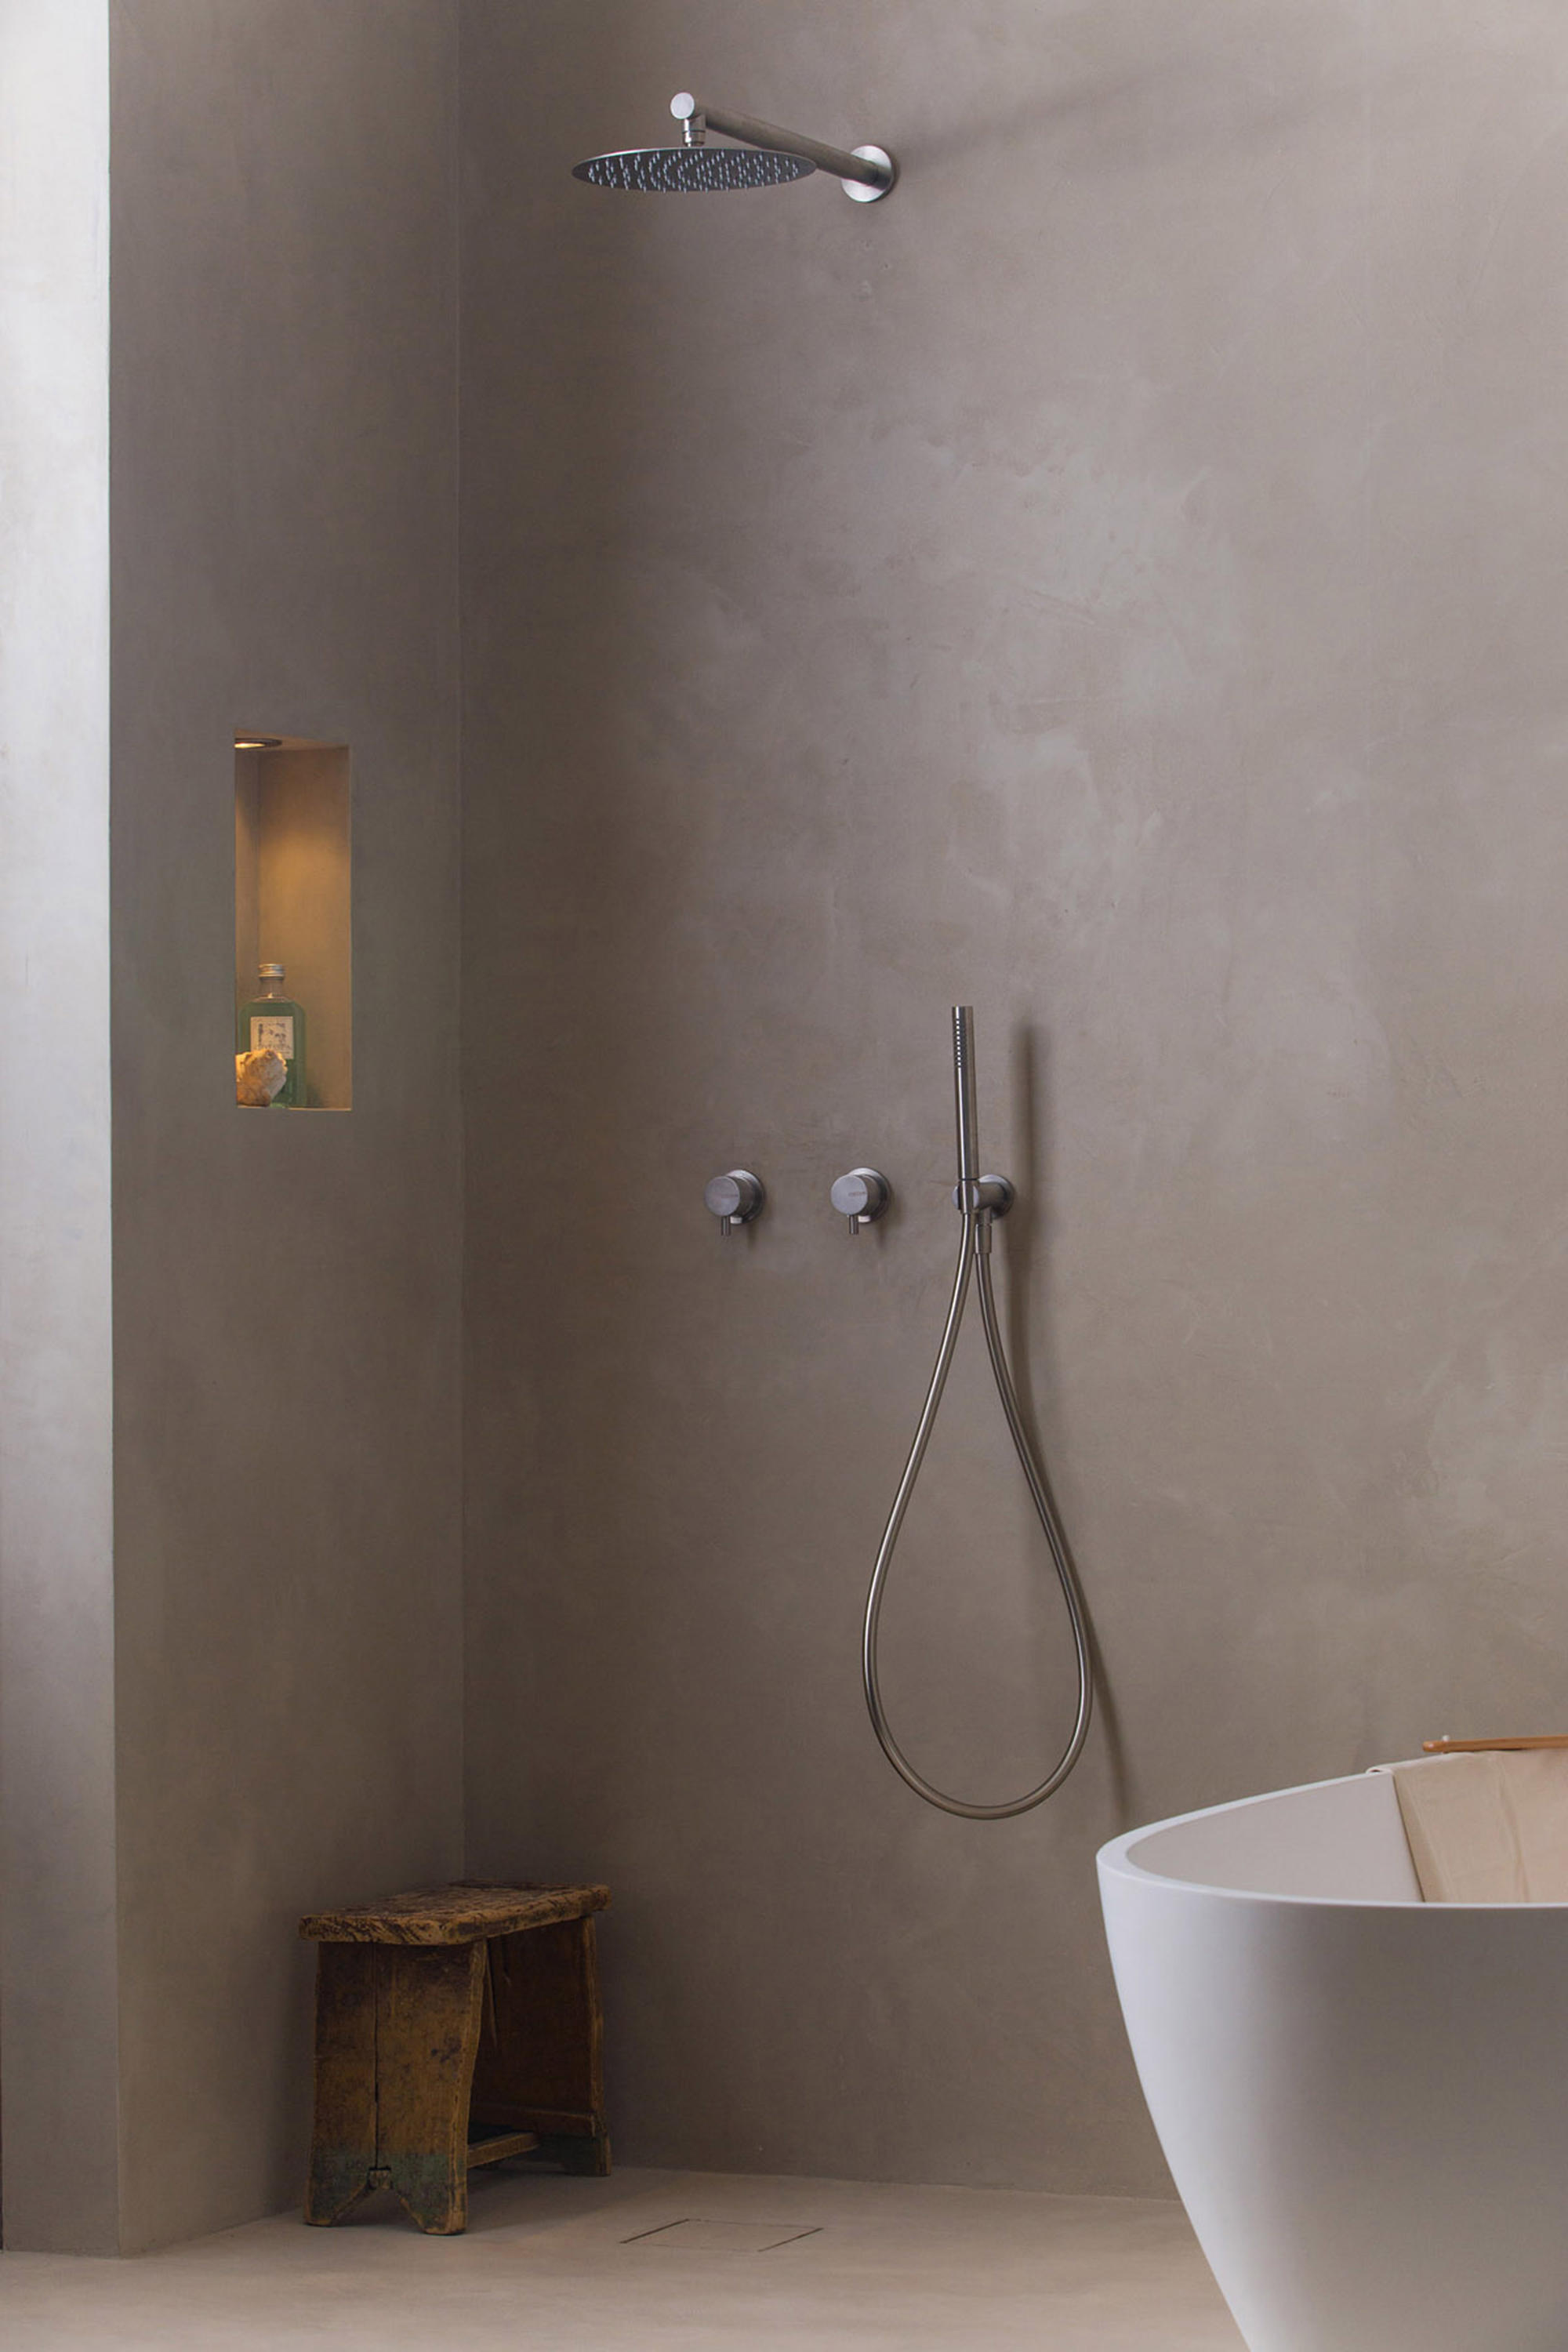 MONO SET28 | SHOWER SET WITH 2 MIXERS - Shower taps / mixers from ...